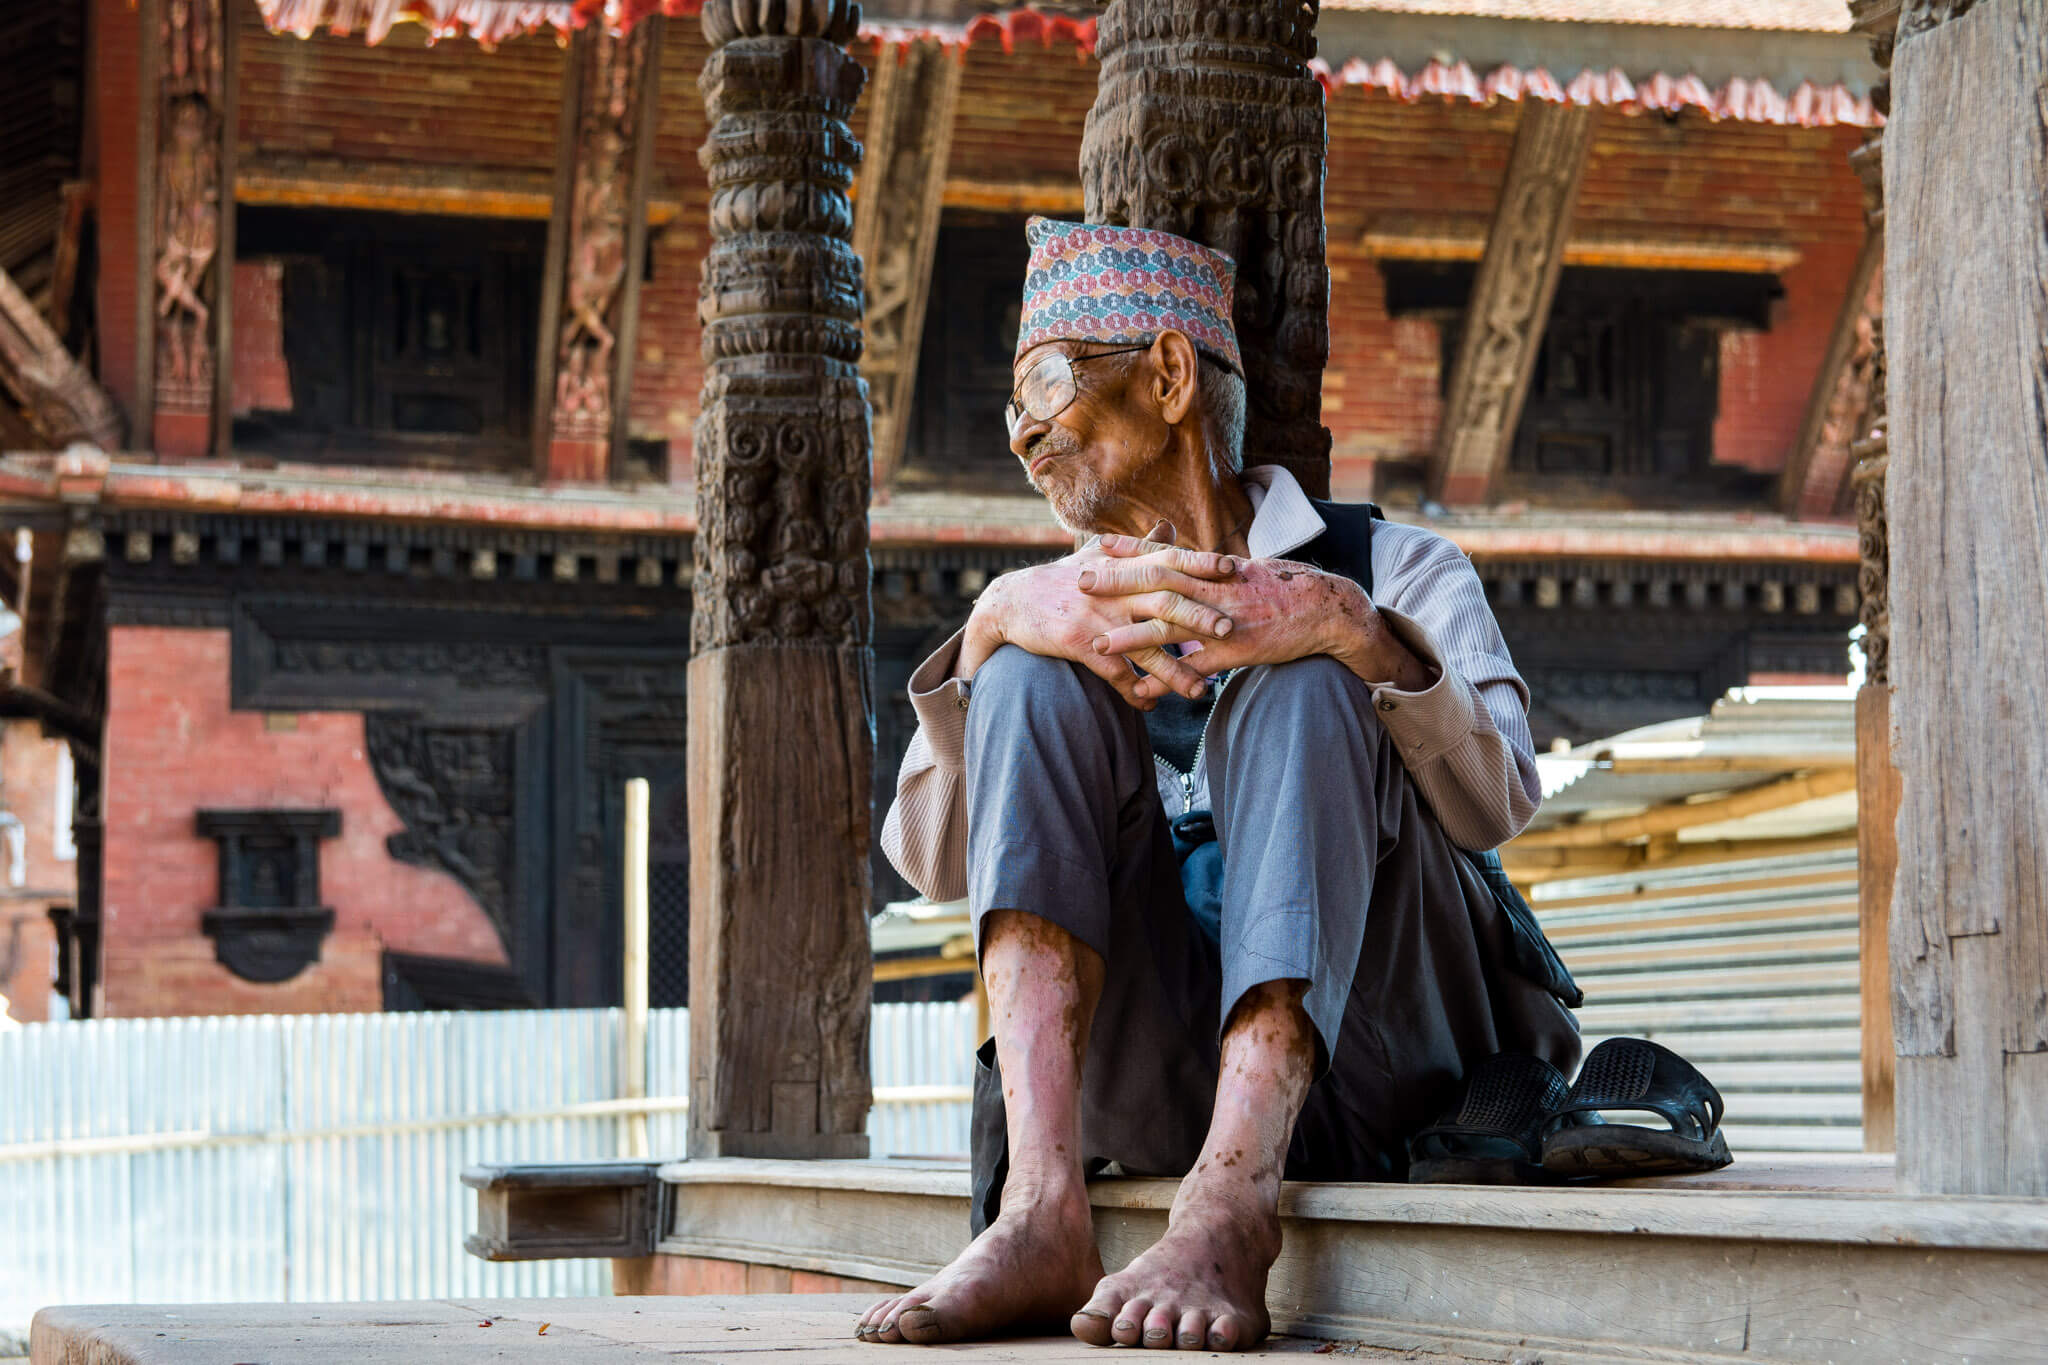 Humans of Nepal, some of the kindest in the world